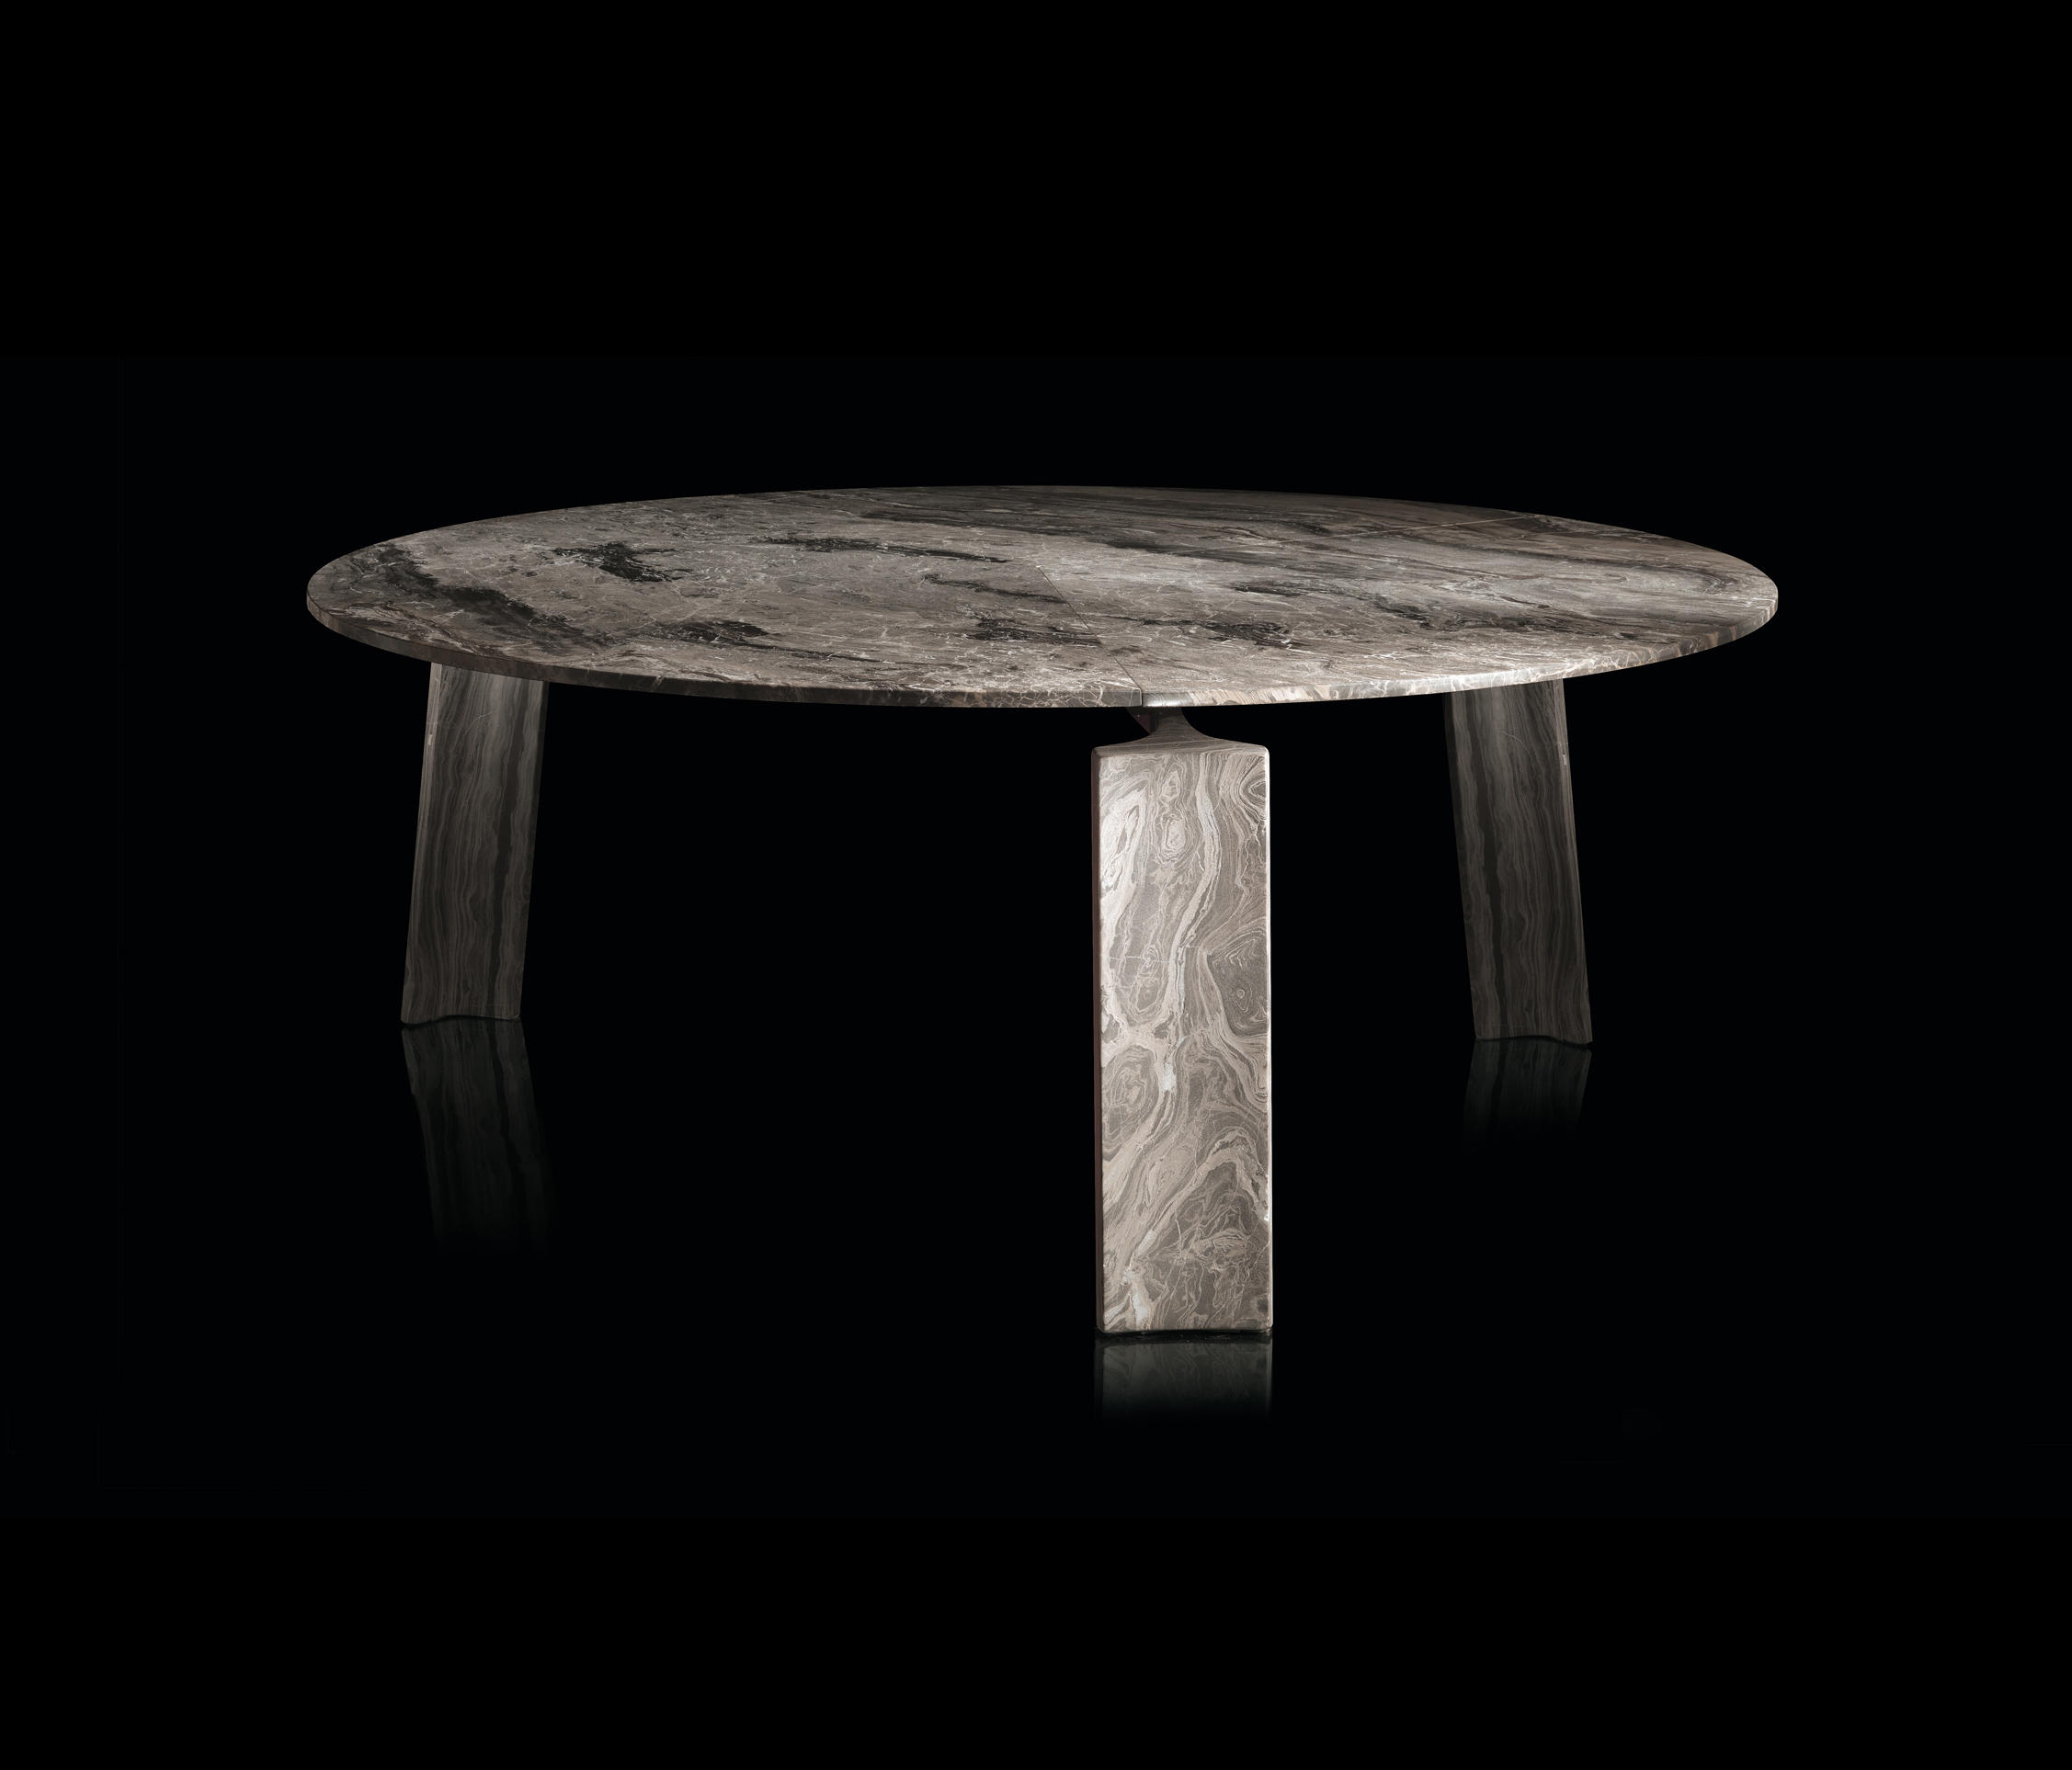 Stone Table Dining Tables From Henge Architonic